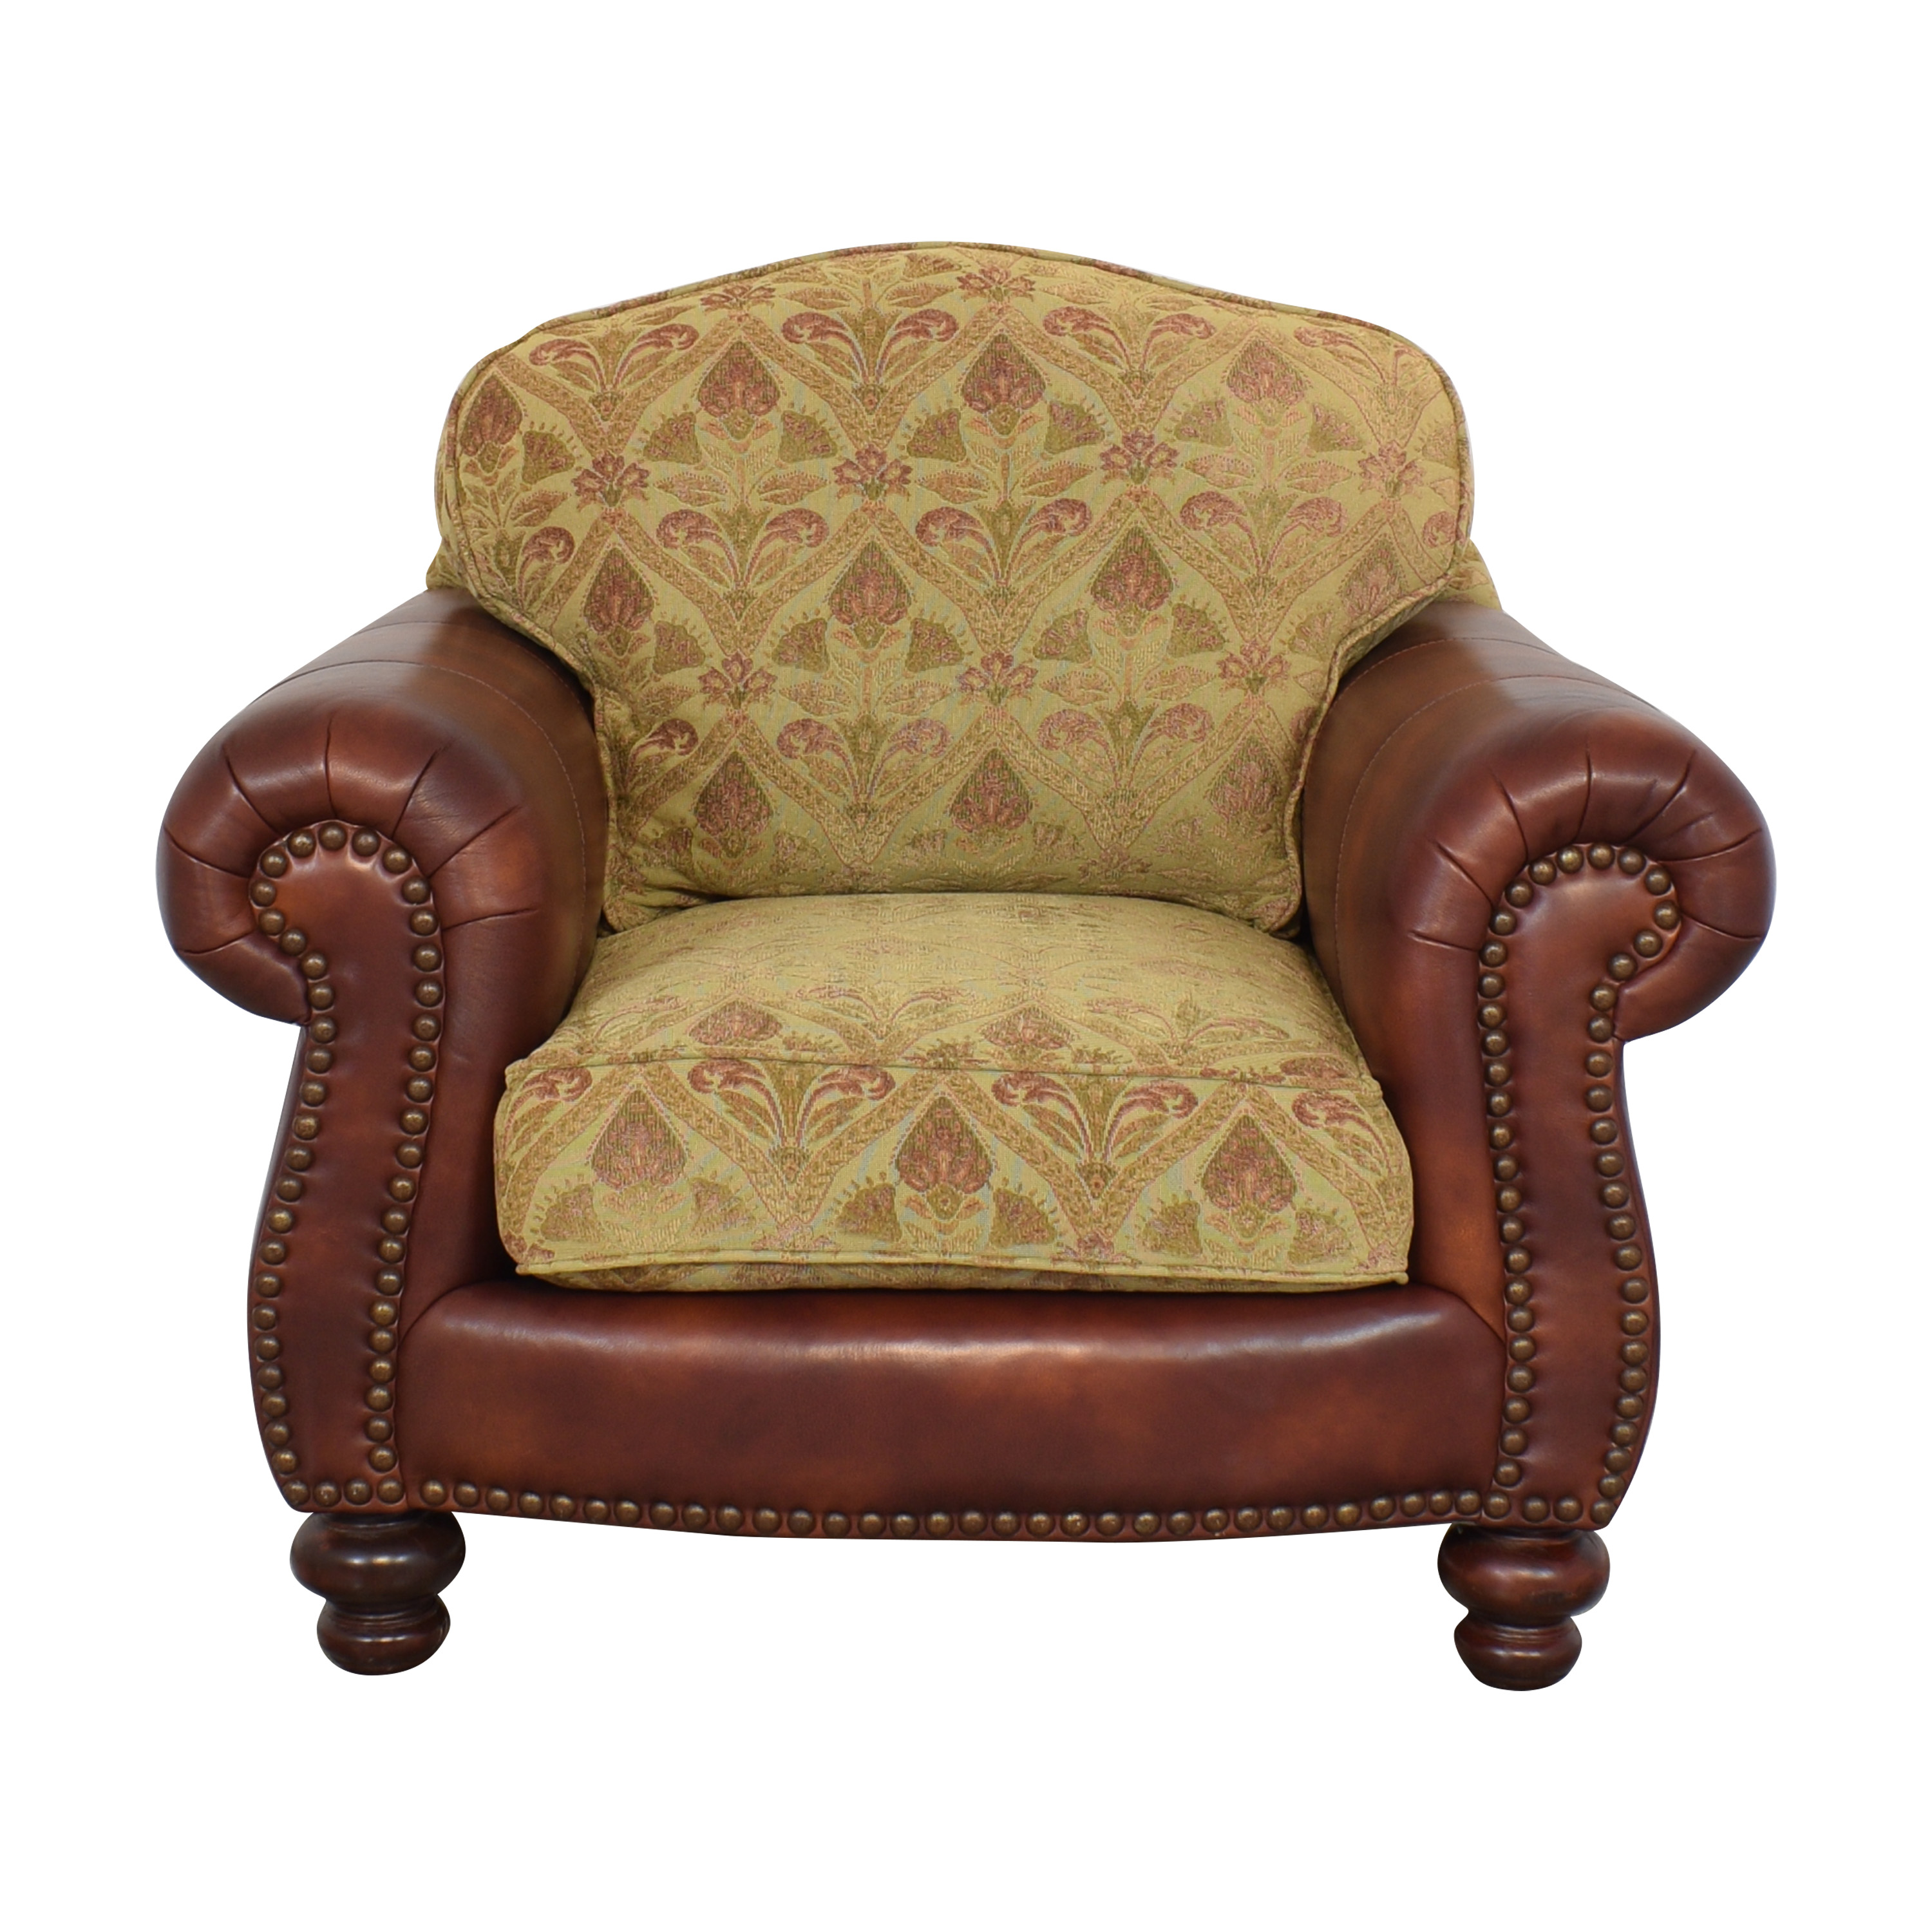 shop Distinctions Furniture Distinctions Furniture Nailhead Club Chair with Cushions online